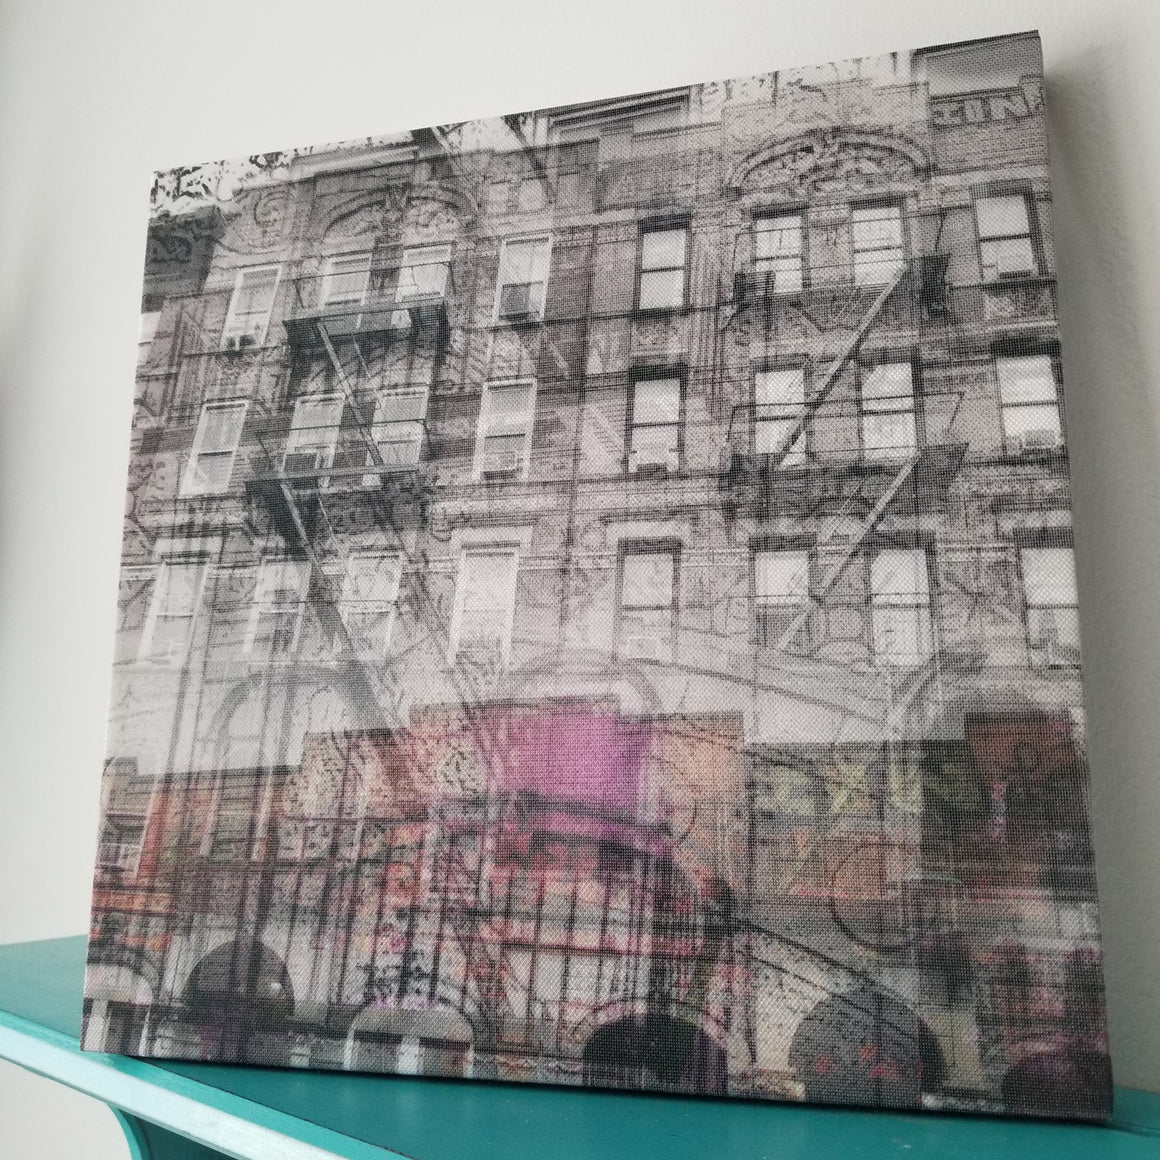 "New York 13"" Canvas - St Marks Place - Photo Collage Wall Art"